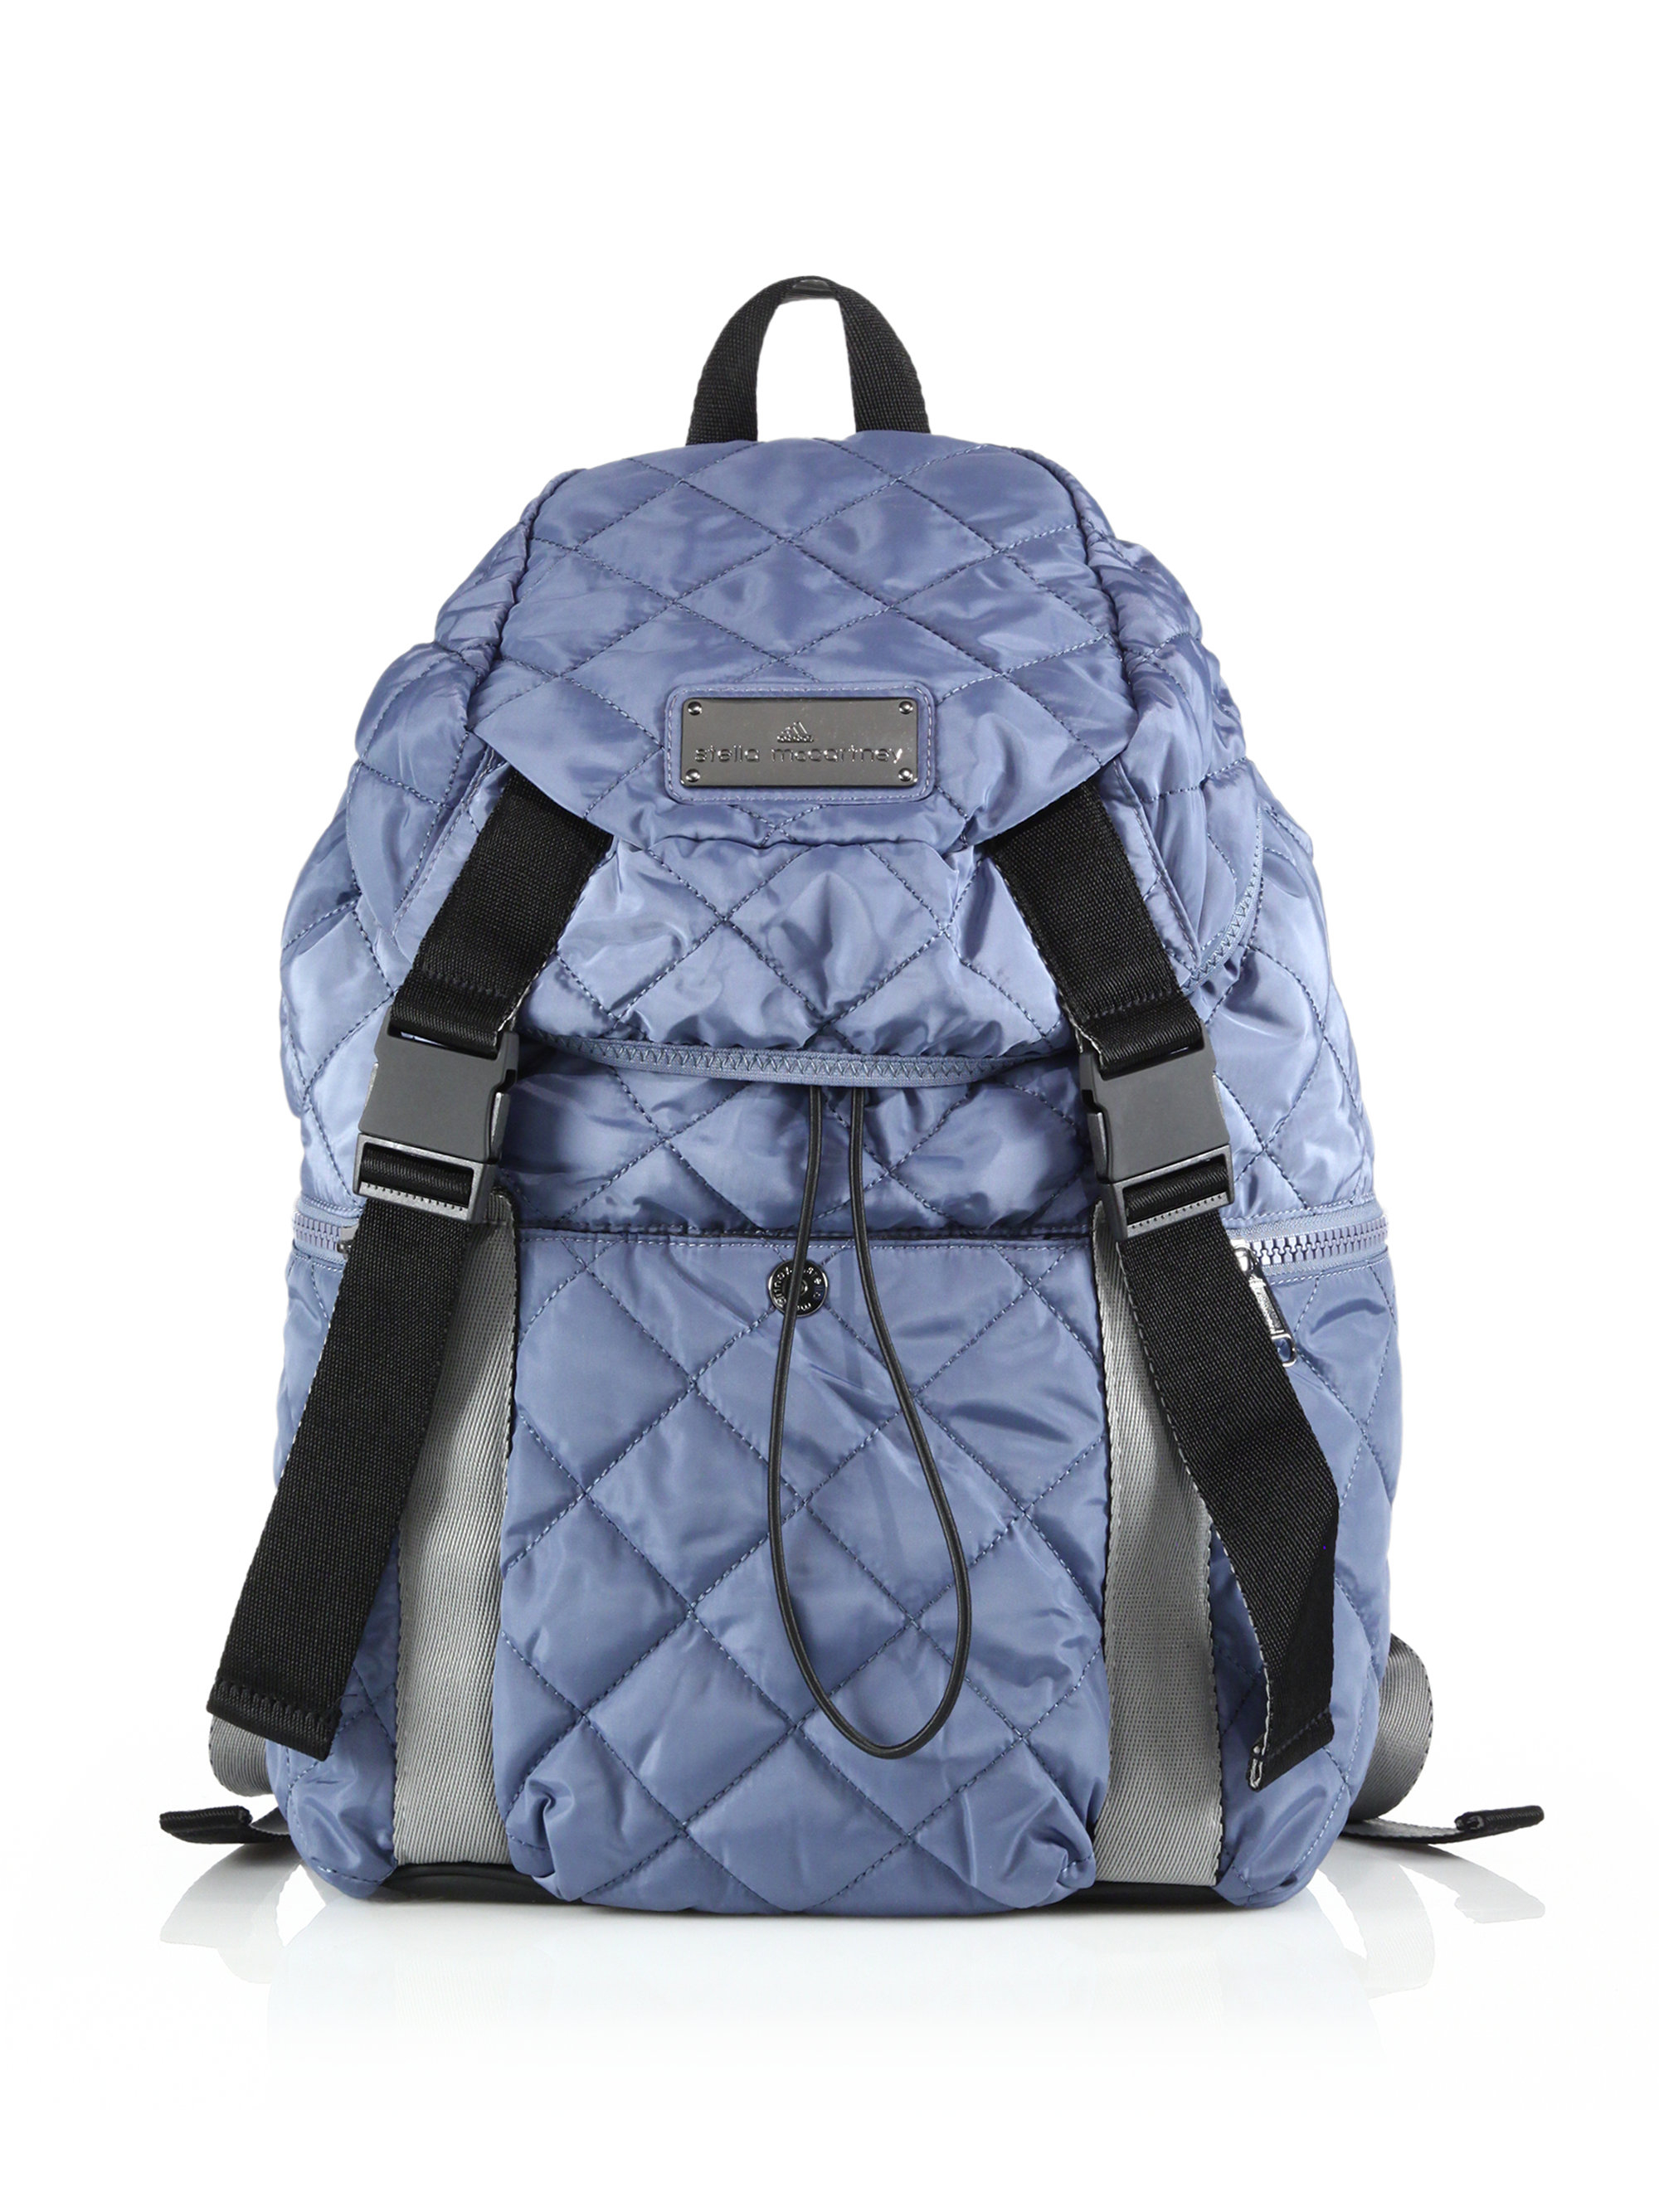 7c59563ace59 Lyst - adidas By Stella McCartney Quilted Weekender Backpack in Blue